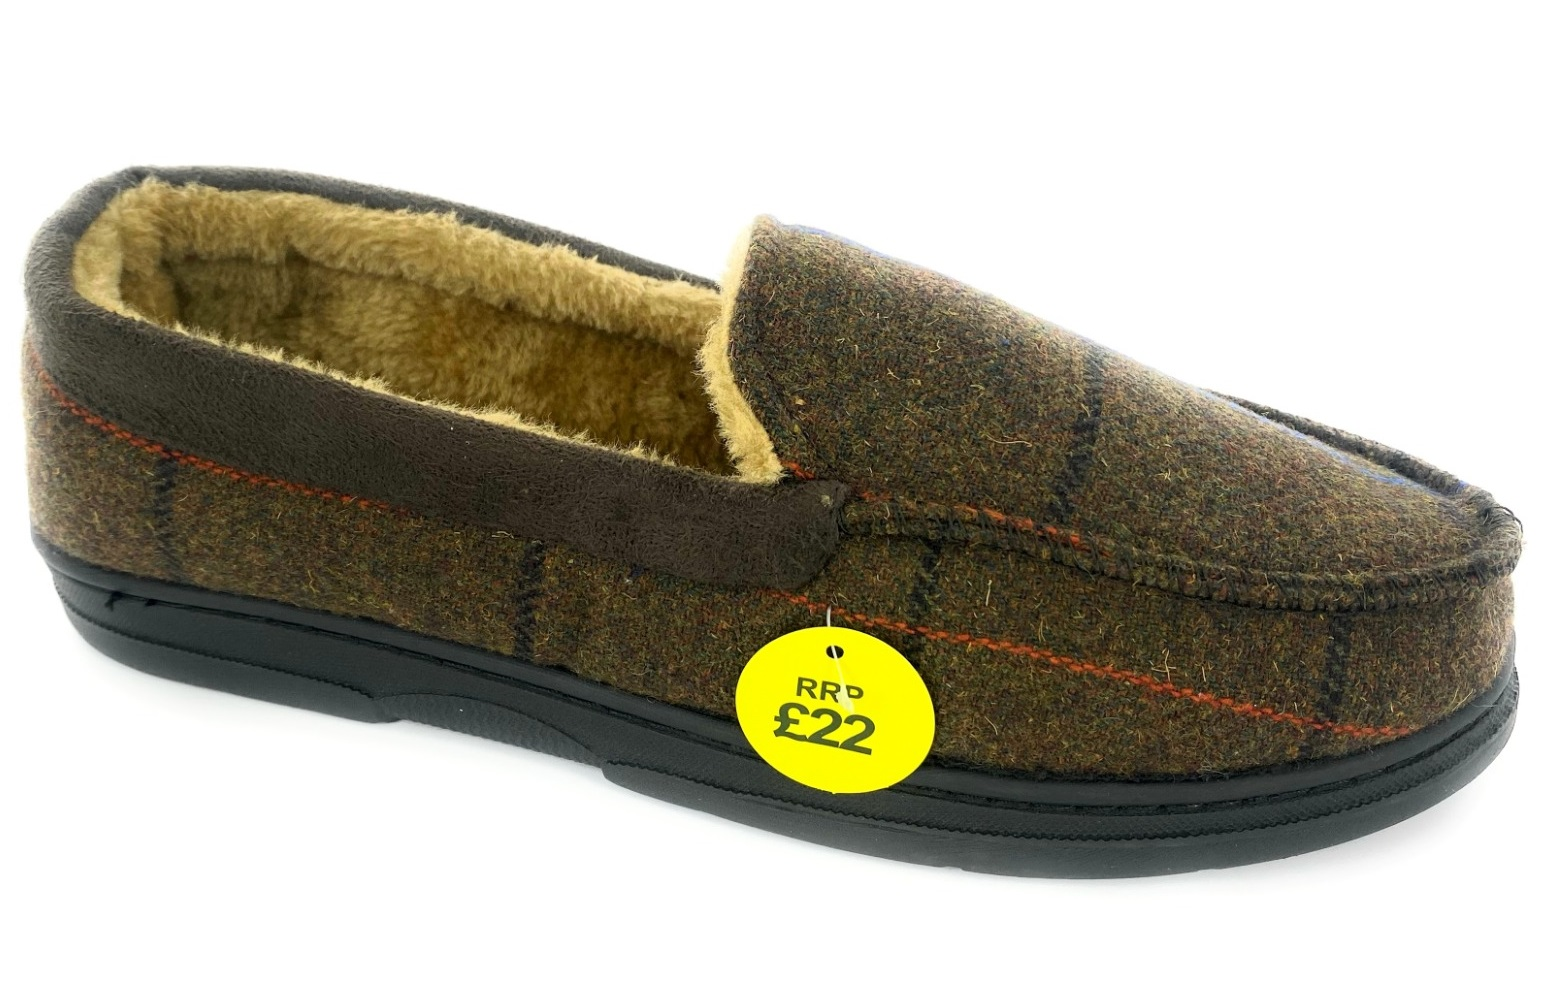 thumbnail 15 - MENS CHECK WARM MOCCASINS FAUX SUEDE SHEEPSKIN FUR LINED WINTER SLIPPERS SHOES